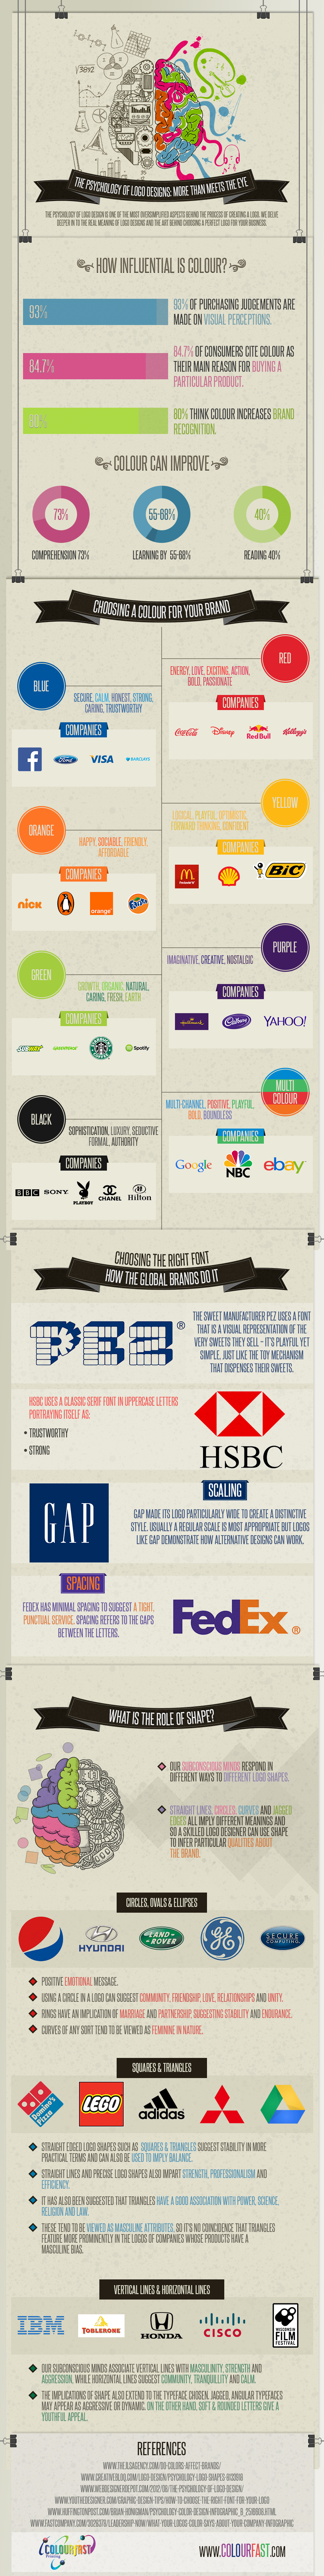 The_Psychology_of_Logo_Designs